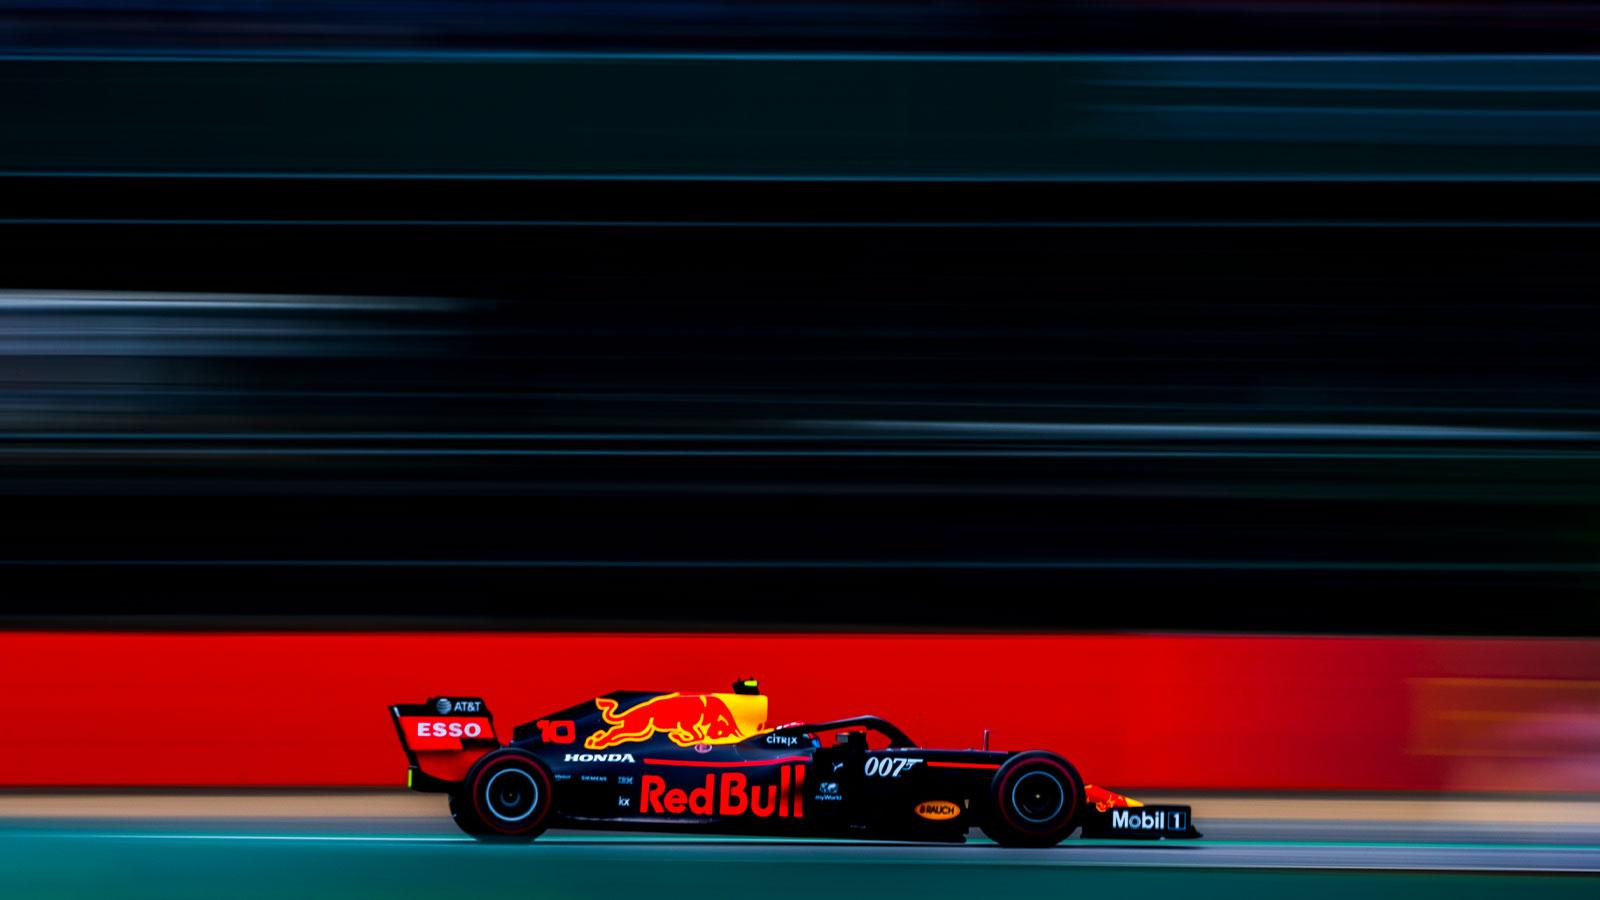 Aston Martin Red Bull Racing On Twitter Seeing Red Bull On The Charge Givesyouwings